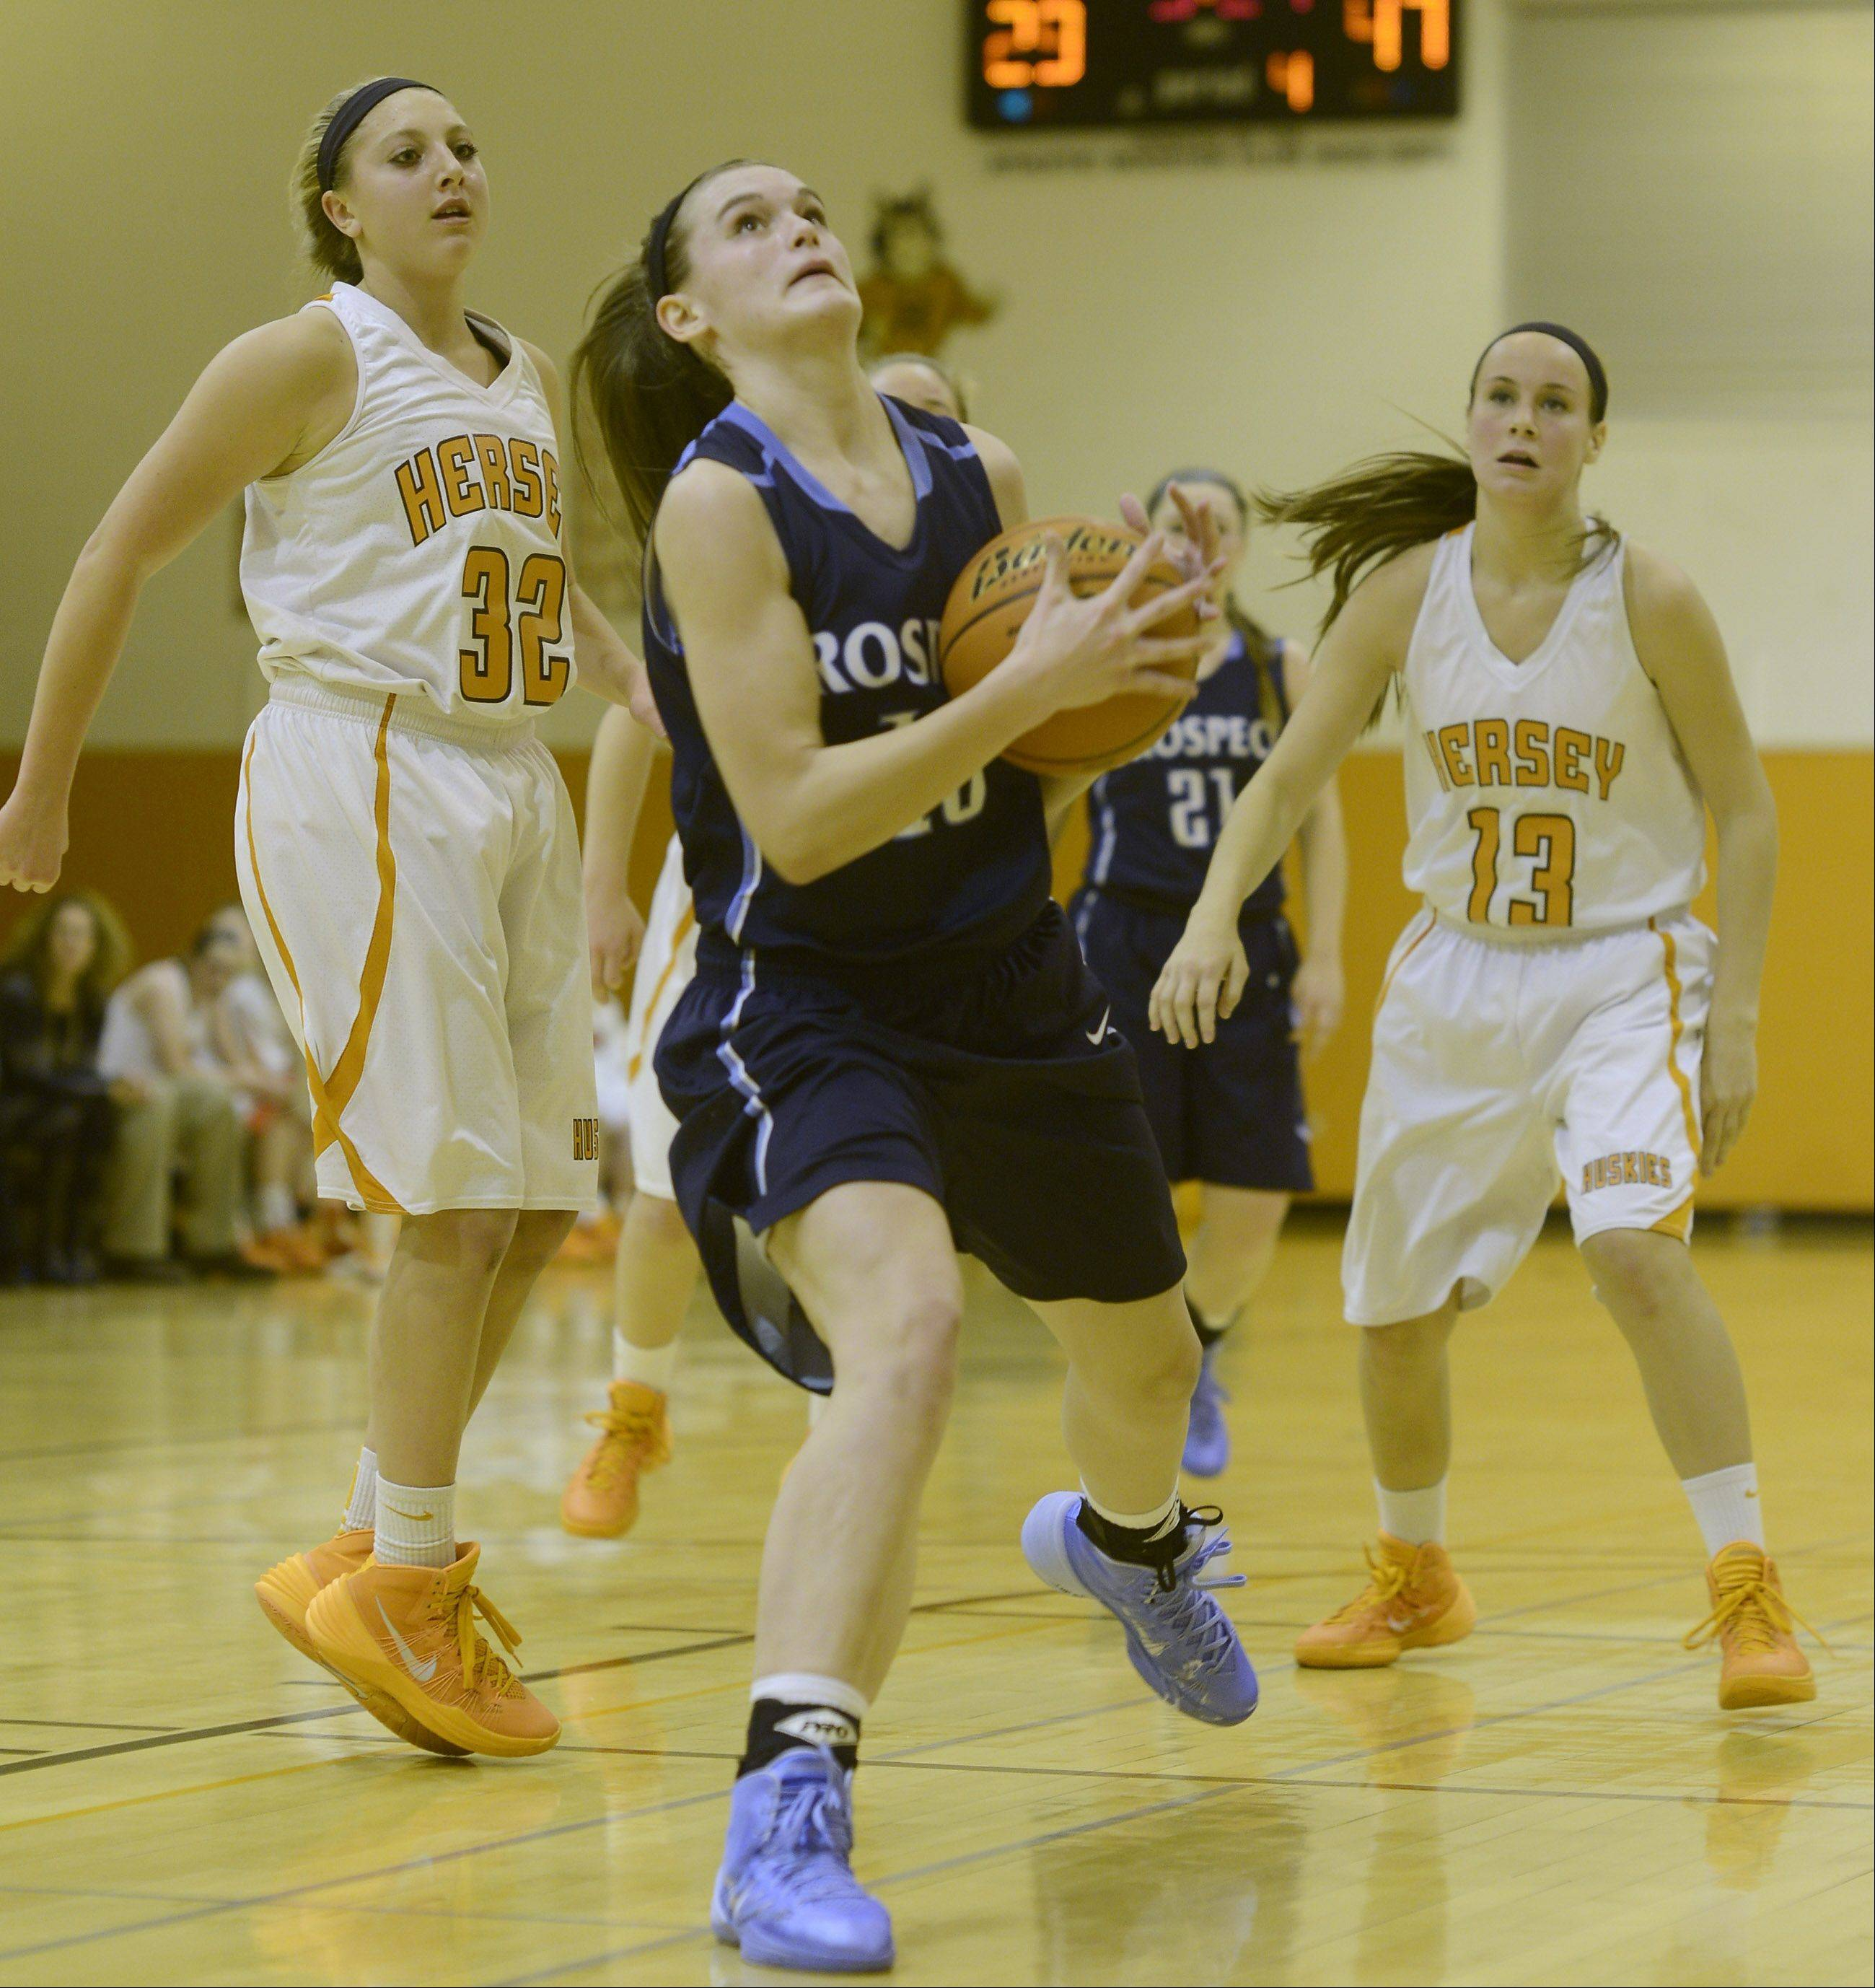 Images from the Hersey vs. Prospect girls basketball game on Tuesday, December 10, in Arlington Heights.